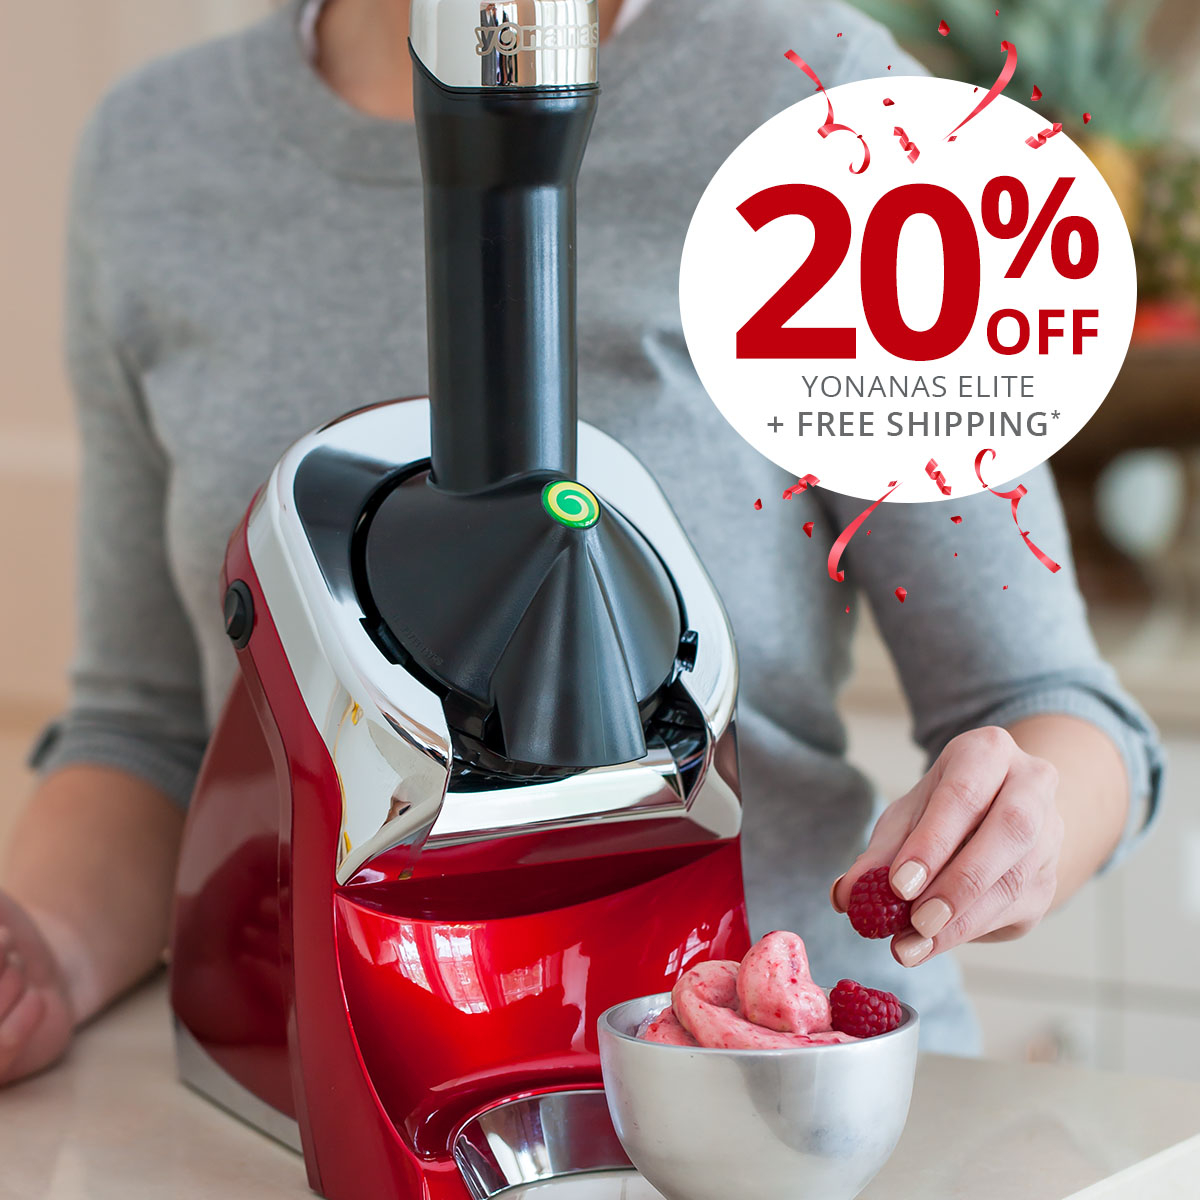 Start your healthy new decade with Dessert! Create guilt-free dessert using fruit with Yonanas Elite. Save 20% now with code YO2020: https://t.co/UzGYdVlCaP https://t.co/hl8m4ugVFx